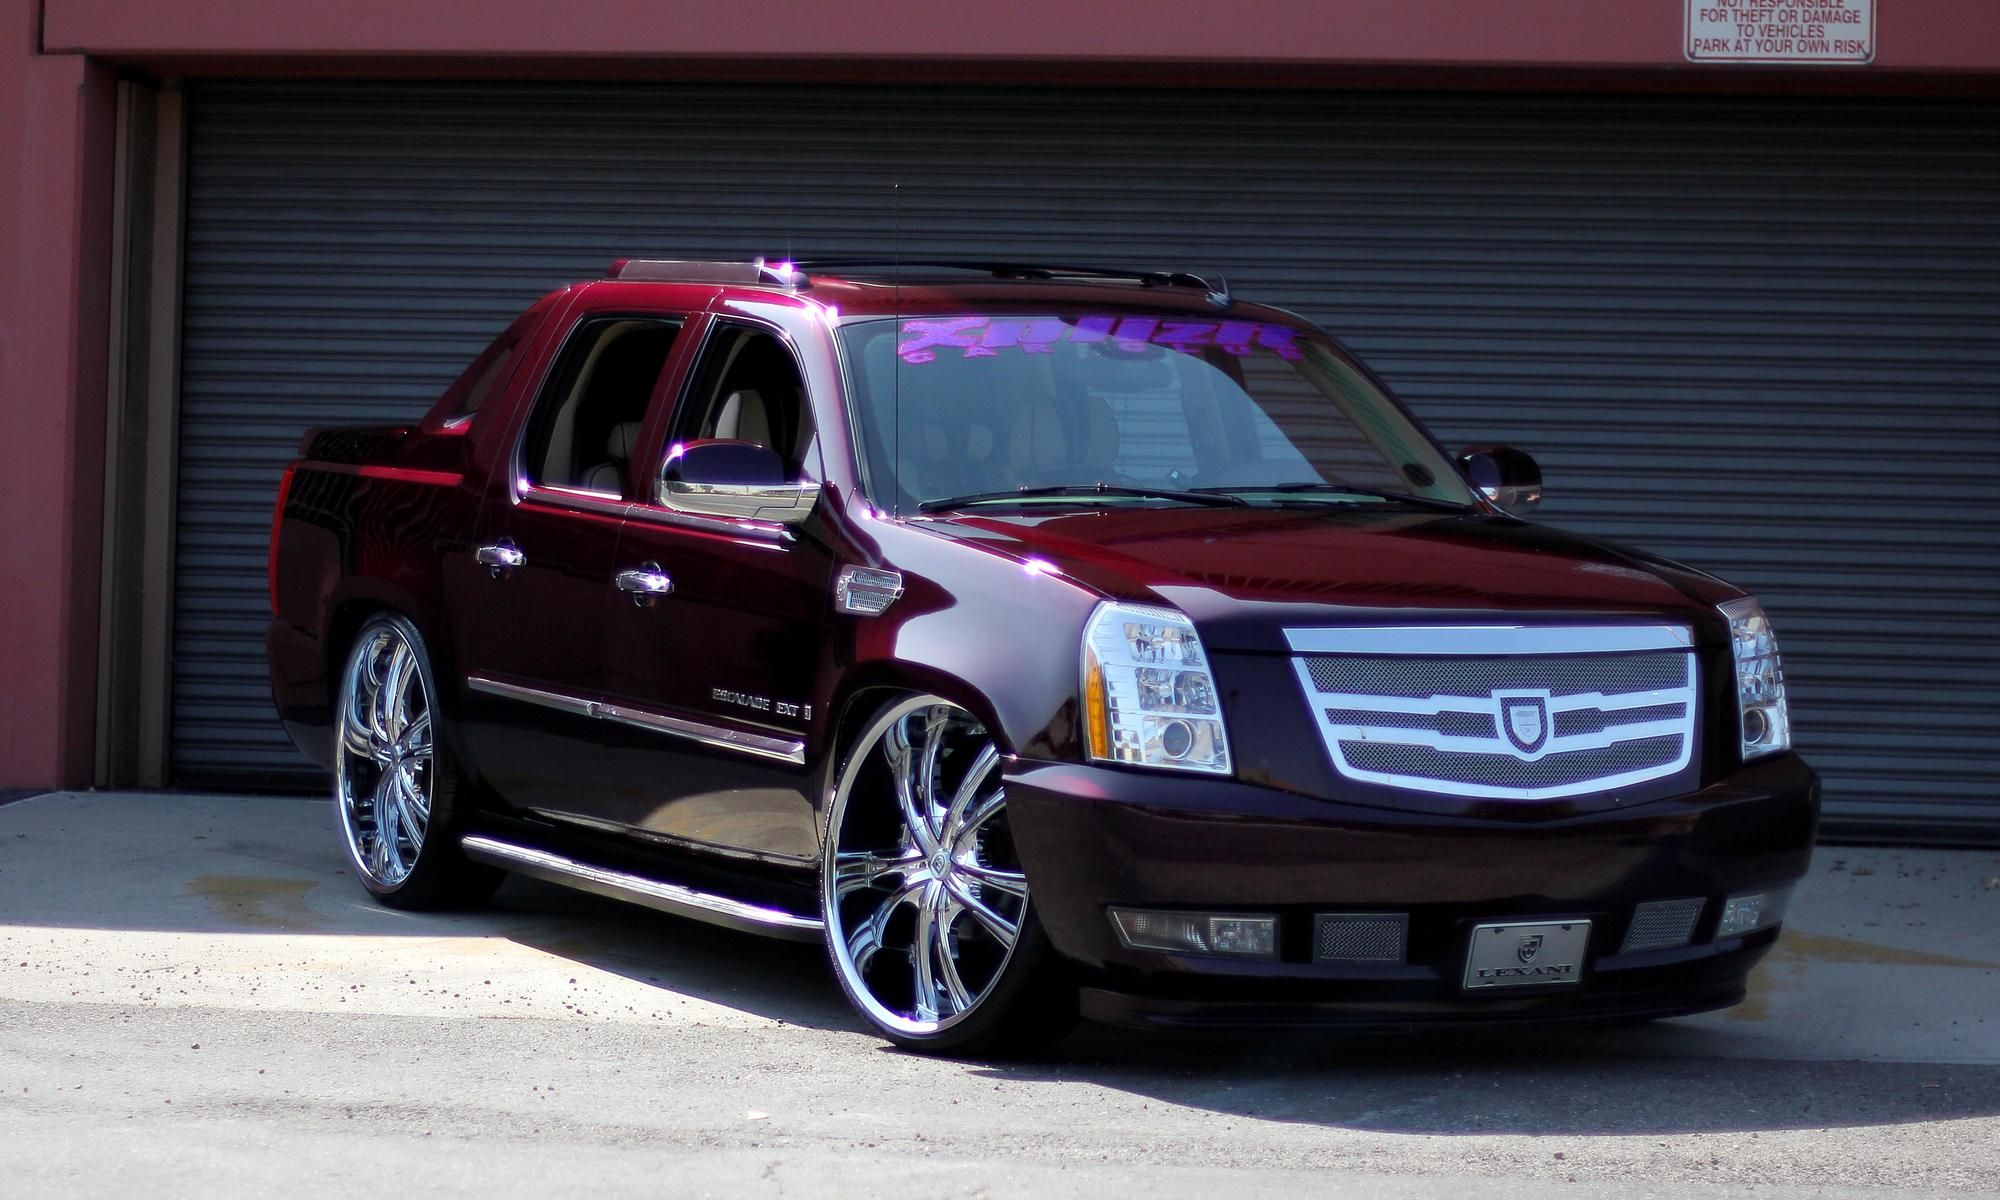 Cadillac Escalade Car Wallpapers